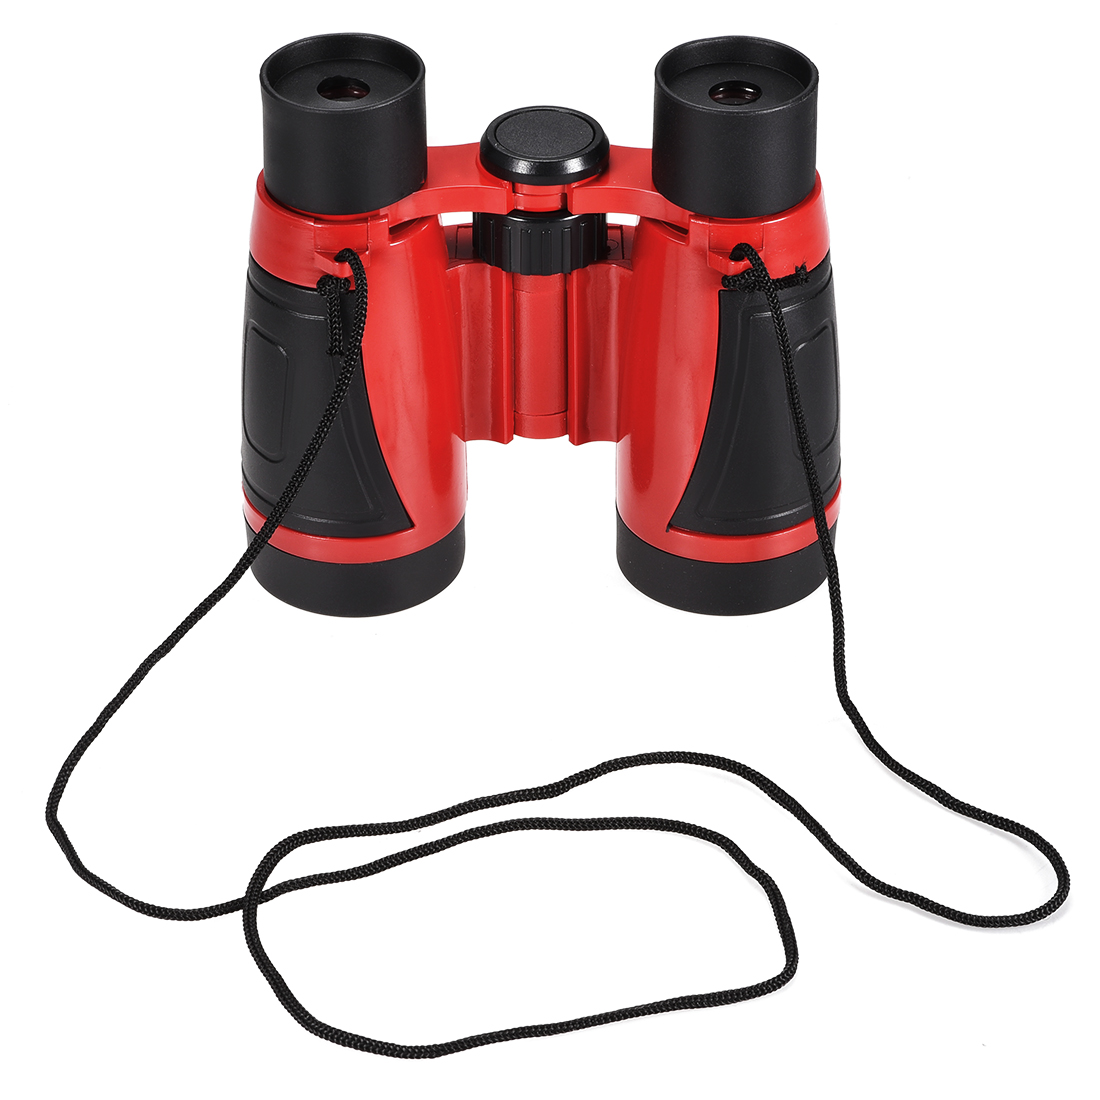 Toy Binoculars 5X30 Compact Foldable Binoculars Shockproof Red with Neck Strap